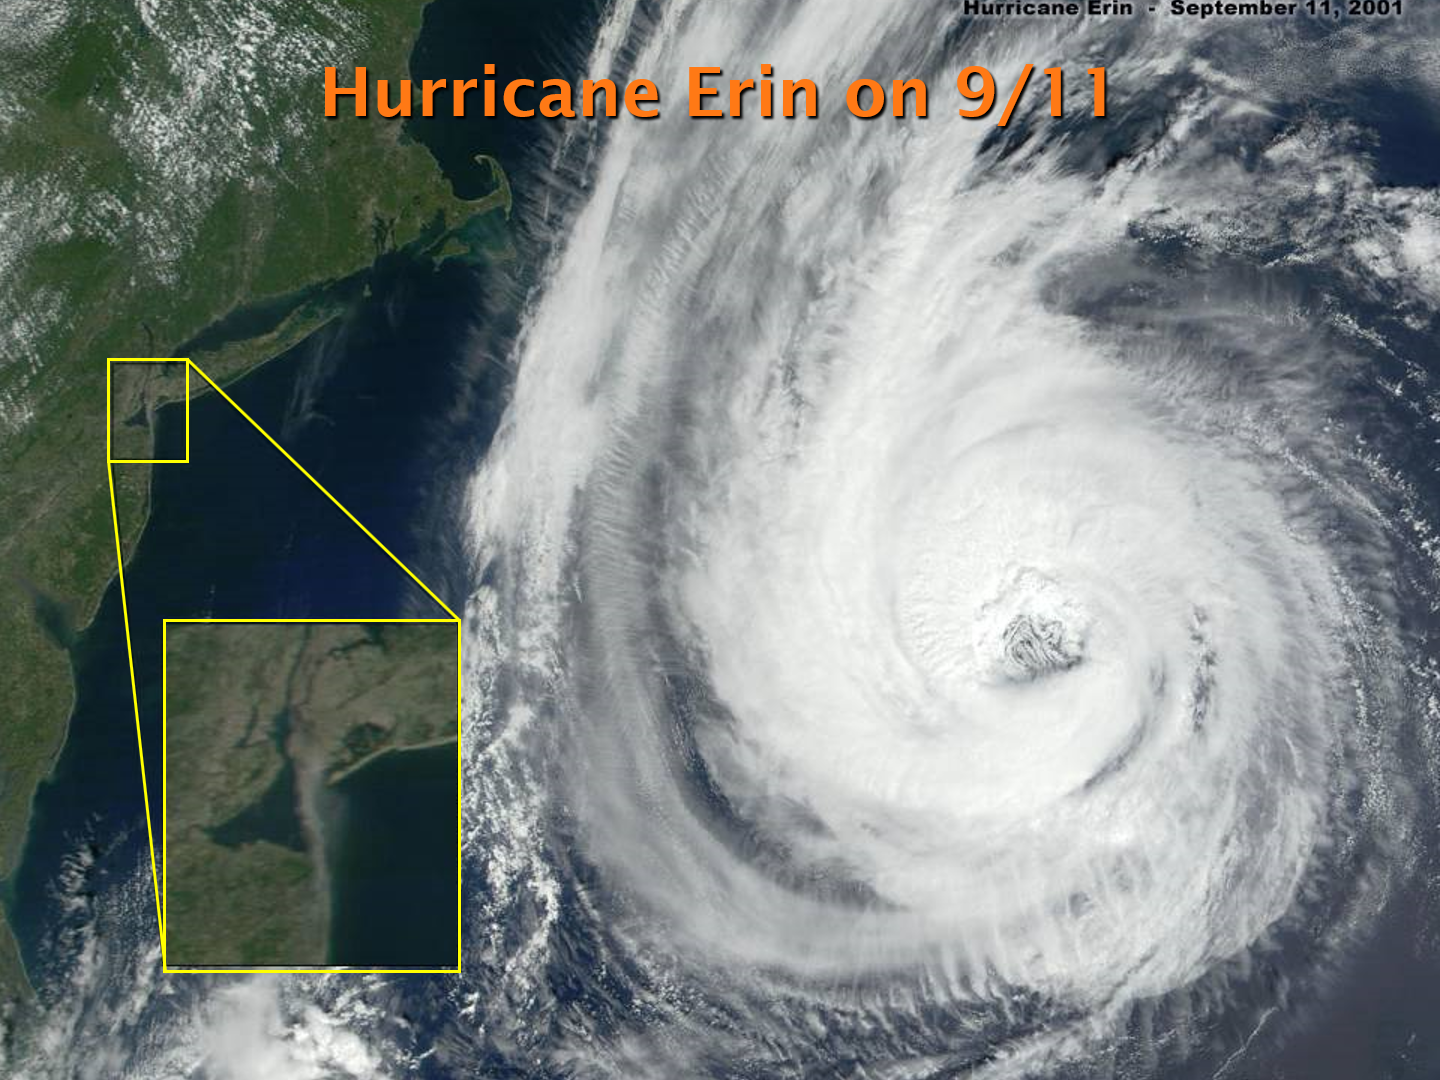 Hurricane Erin on 9/11